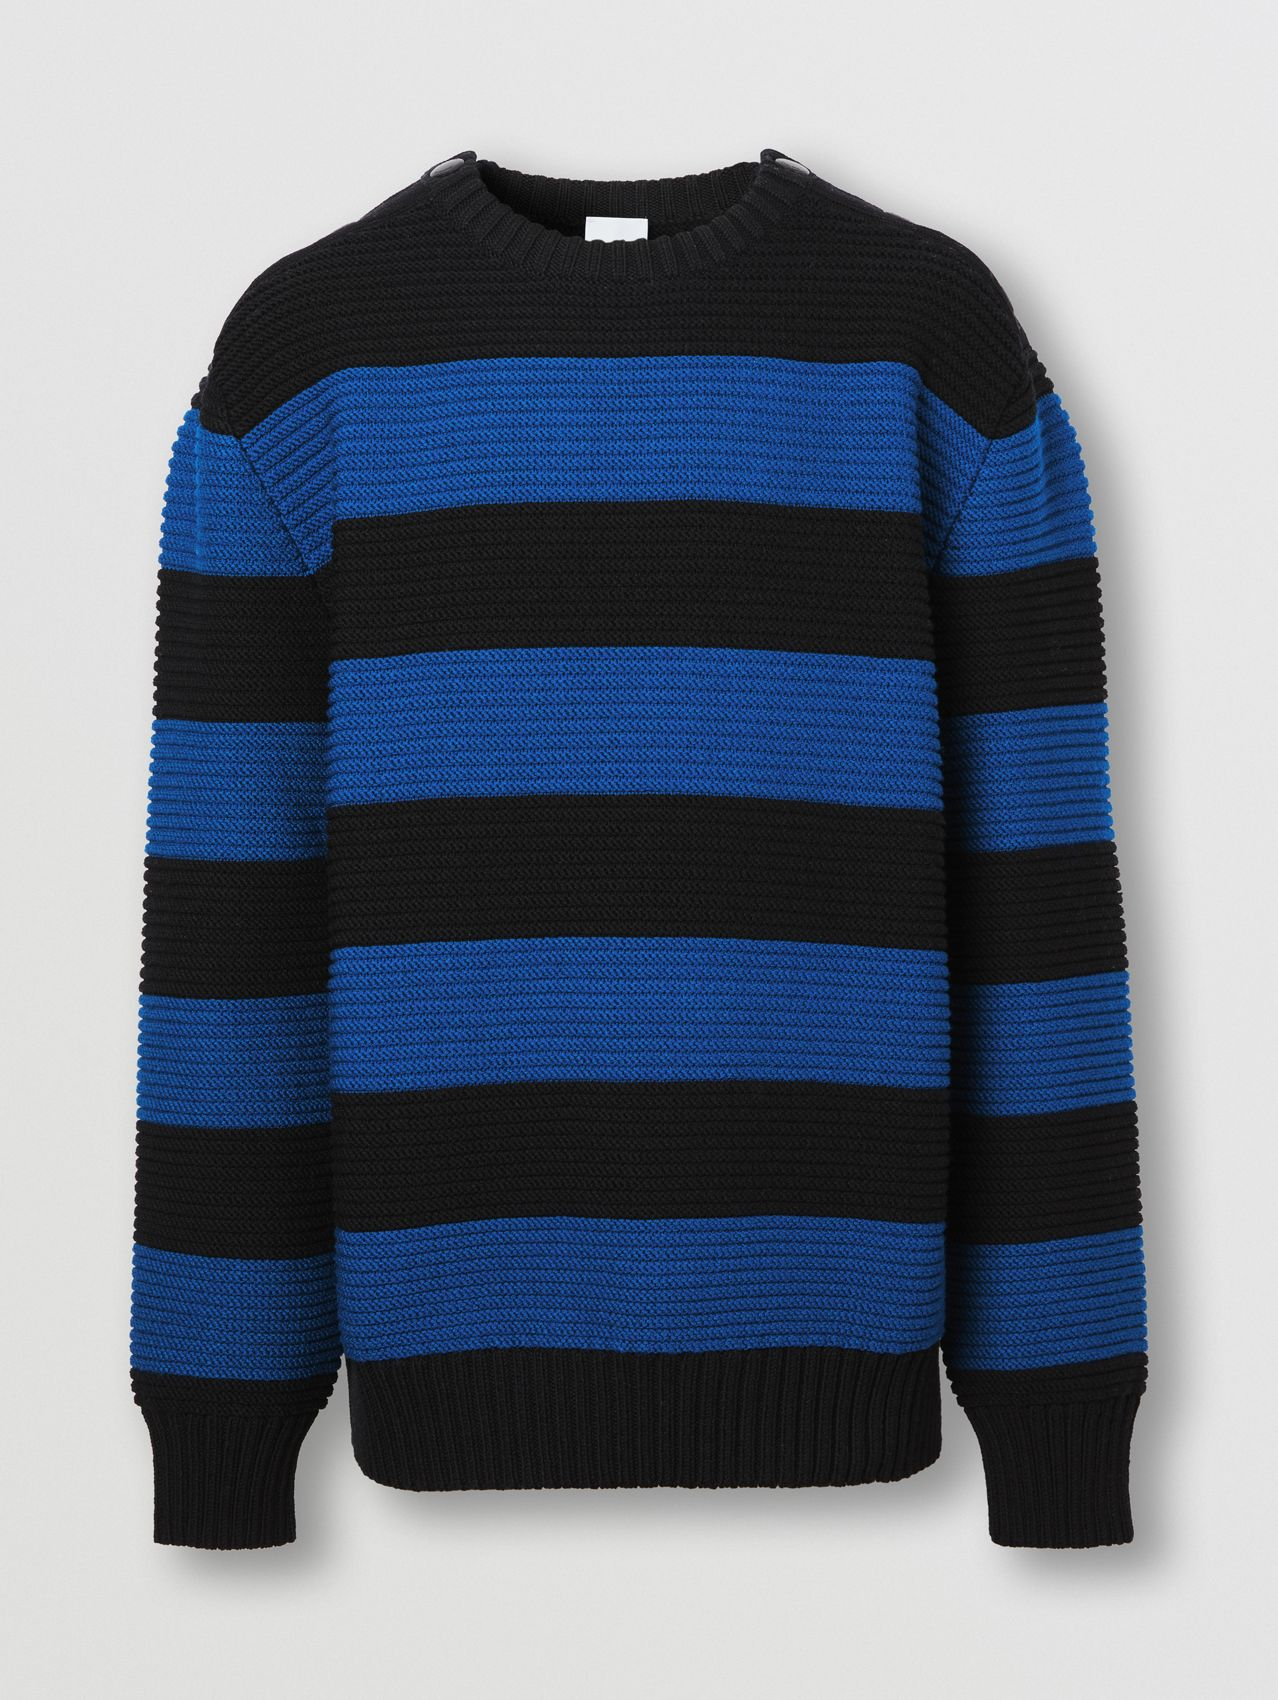 Rib Knit Striped Technical Cotton Blend Sweater in Midnight Navy